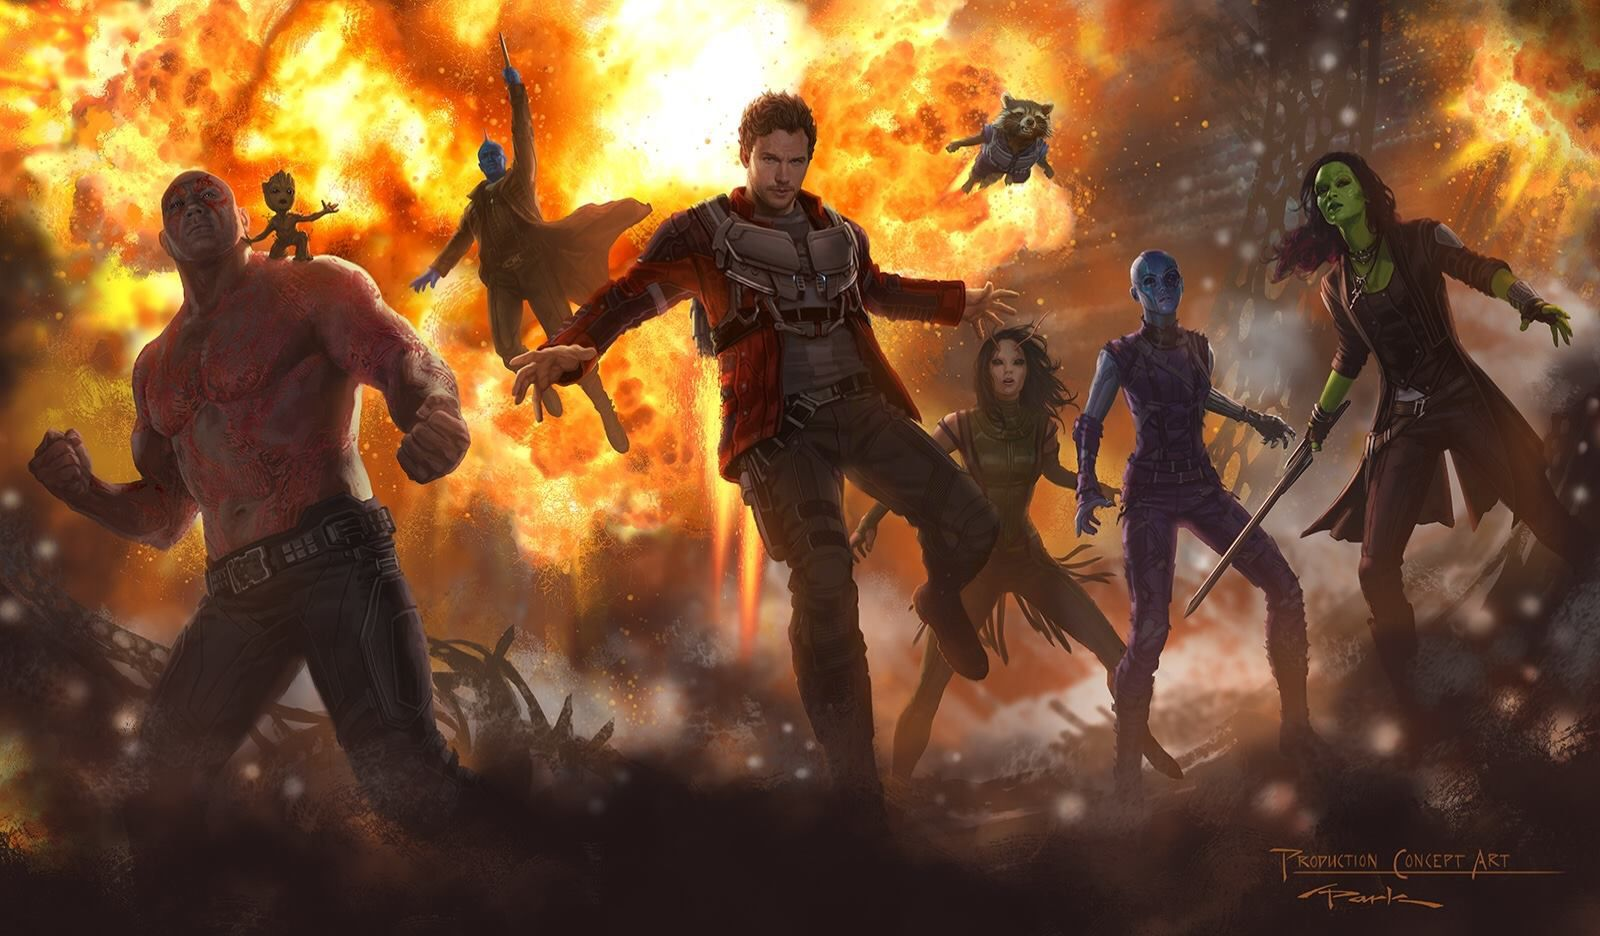 Guardians of the Galaxy Vol 2 Wallpaper